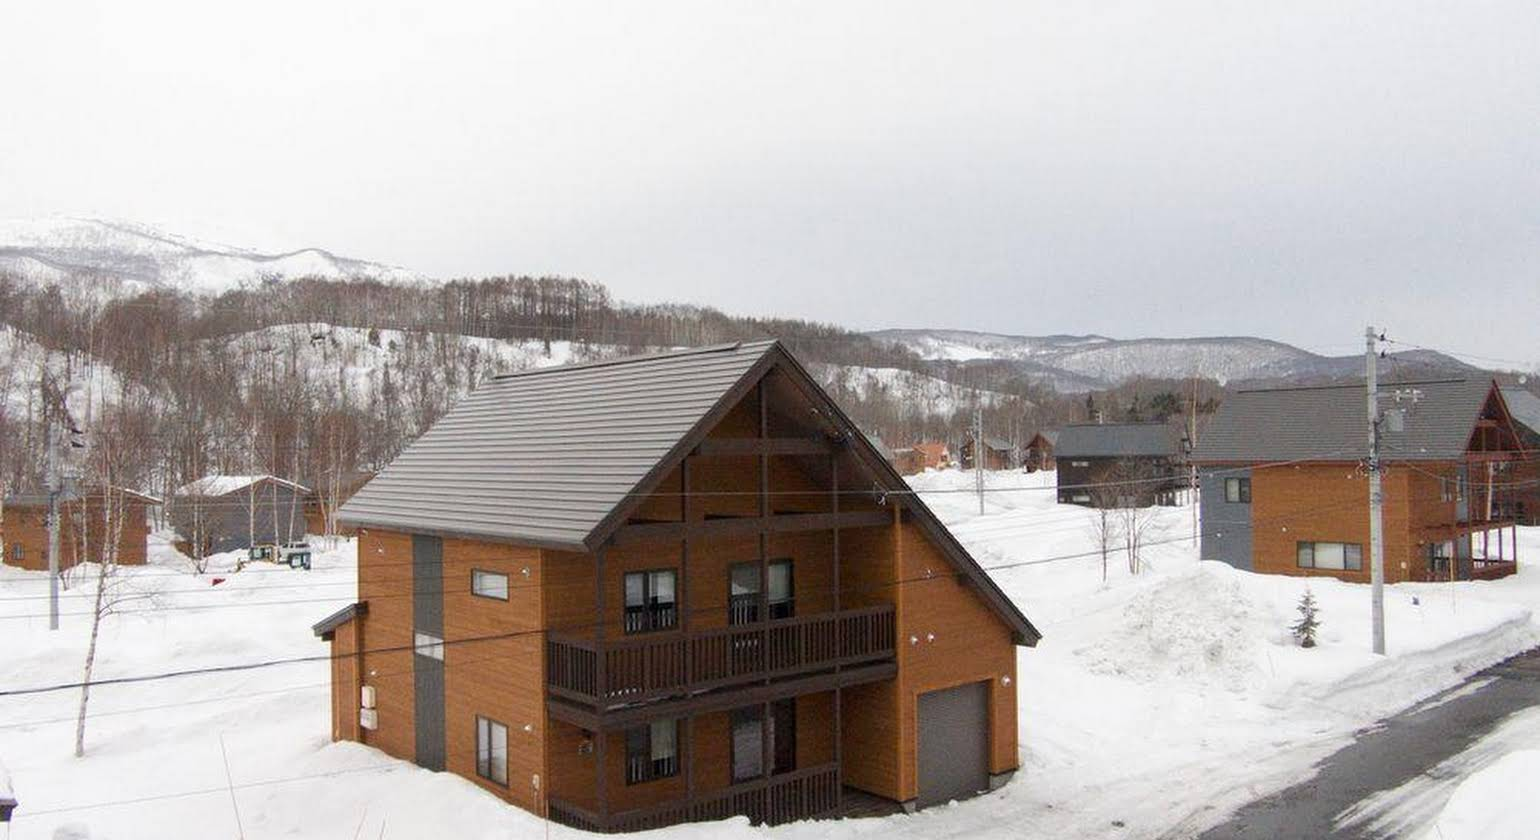 The Chalets at Country Resort